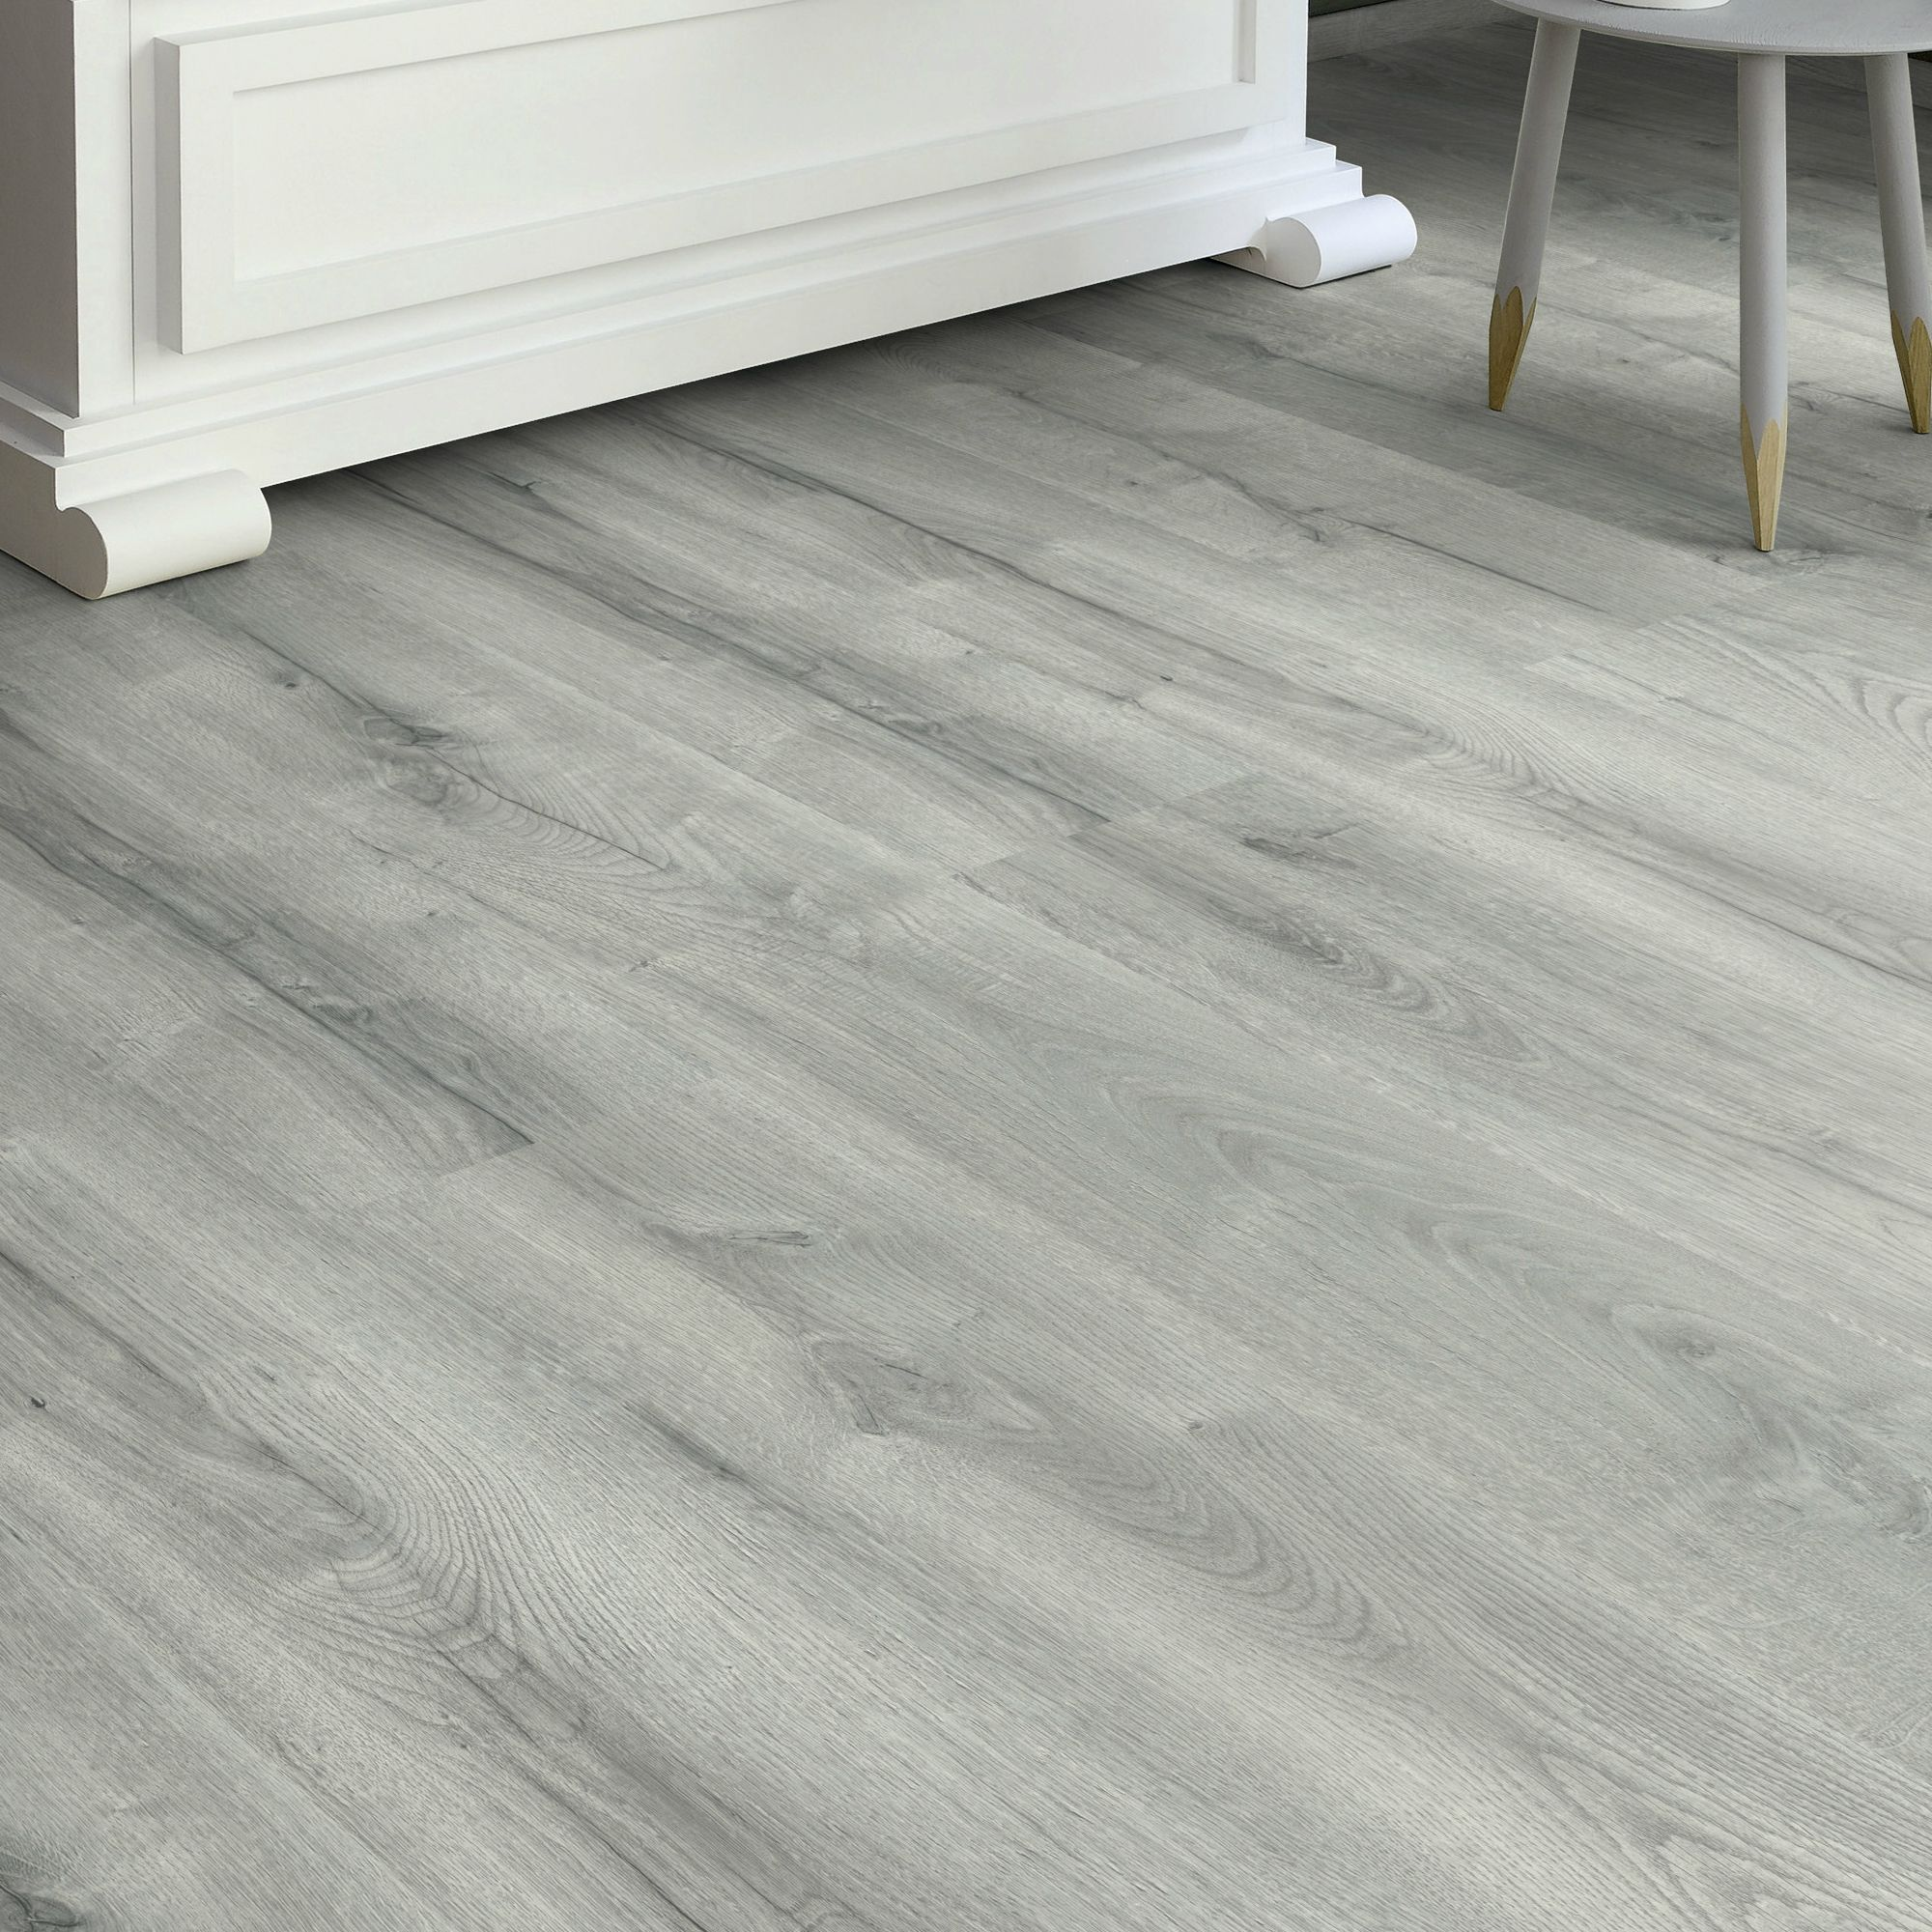 bathgate grey oak effect laminate flooring m pack. Black Bedroom Furniture Sets. Home Design Ideas